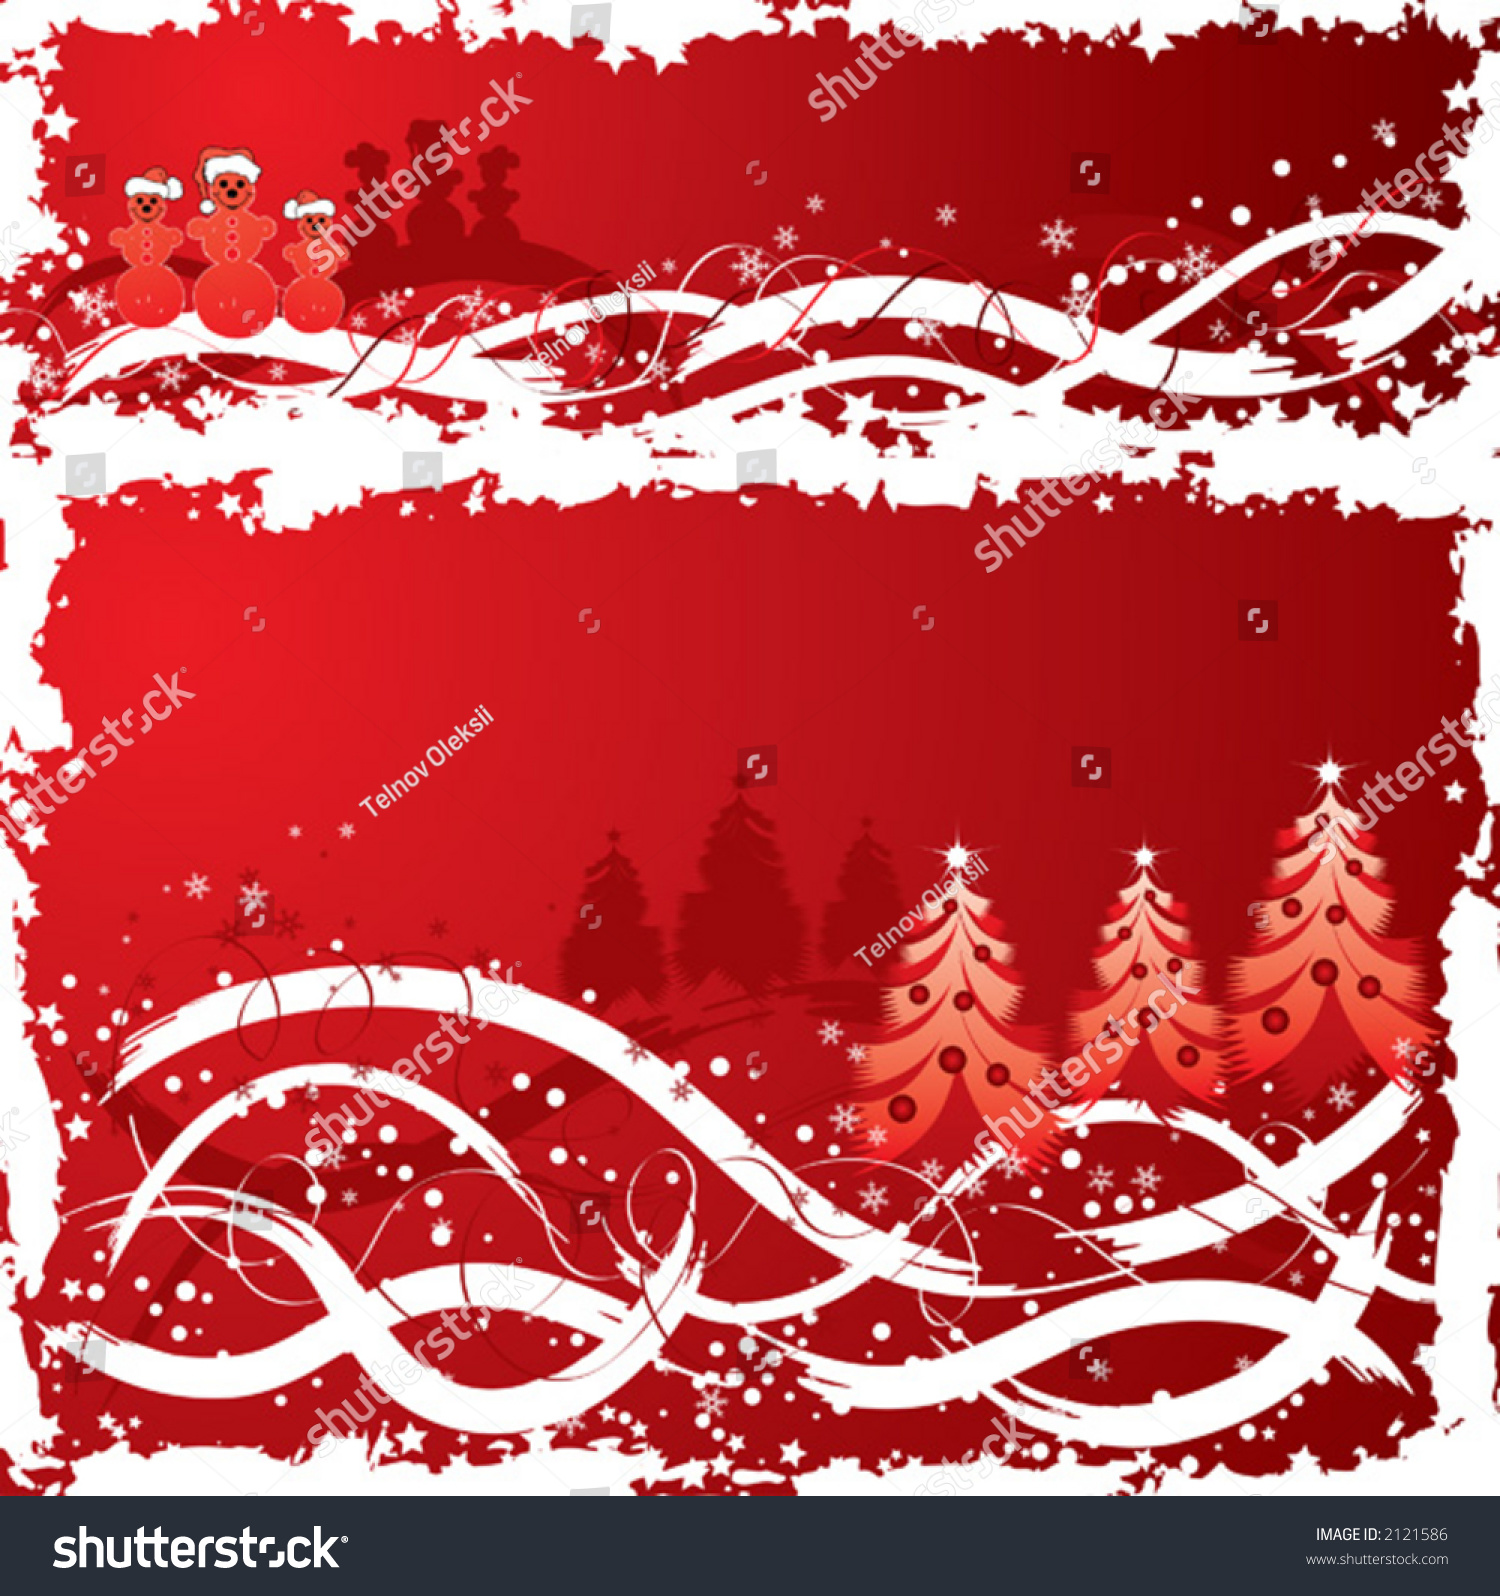 Christmas grunge background snowman tree stock